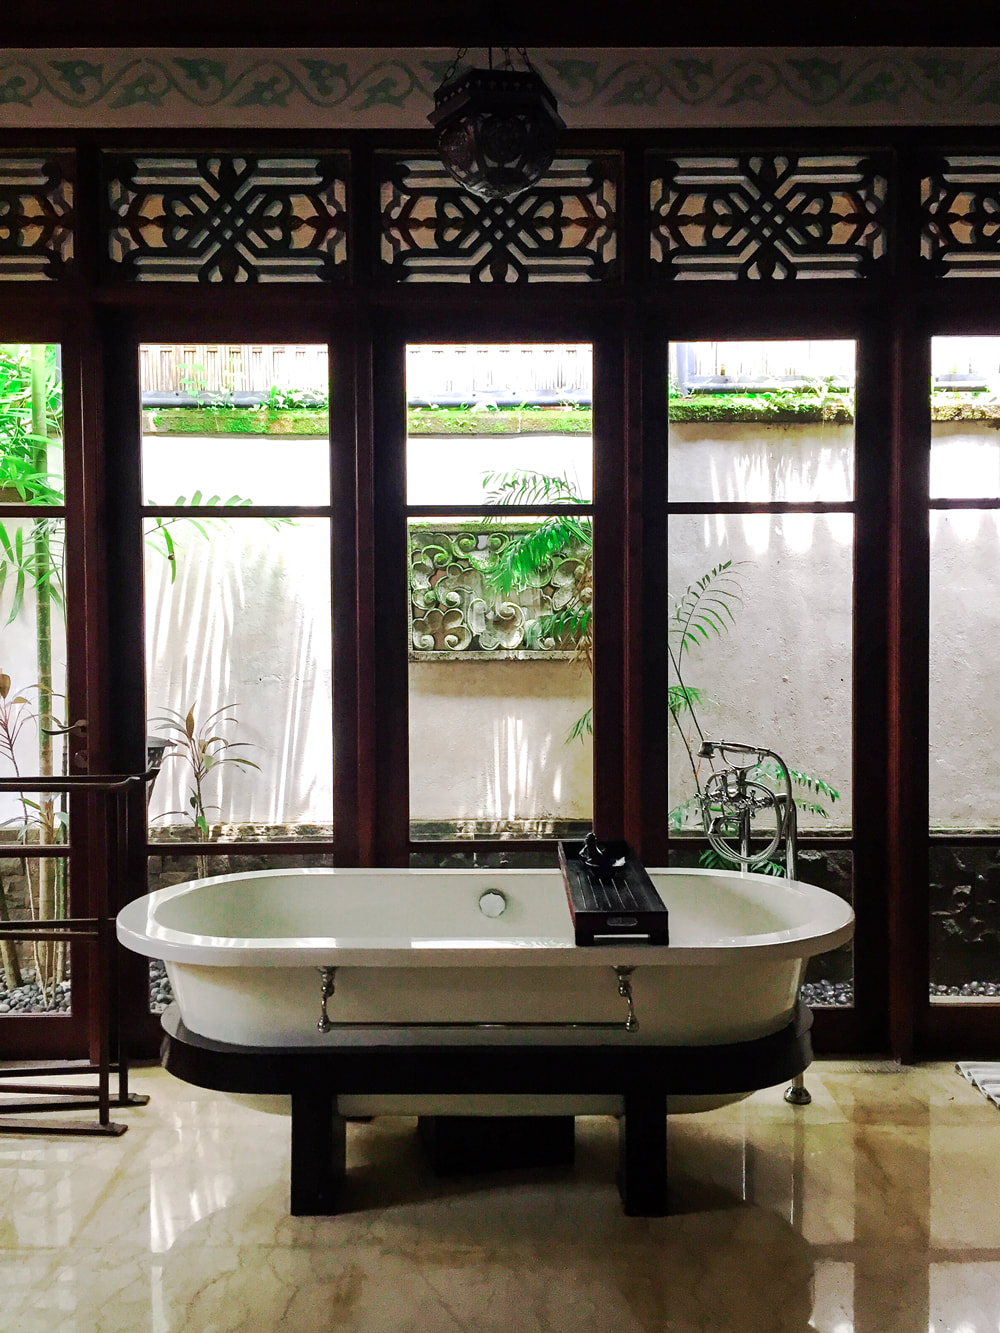 Govardana Villa bathroom. Dwaraka, the Royal Villas, Ubud, Bali, Indonesia.